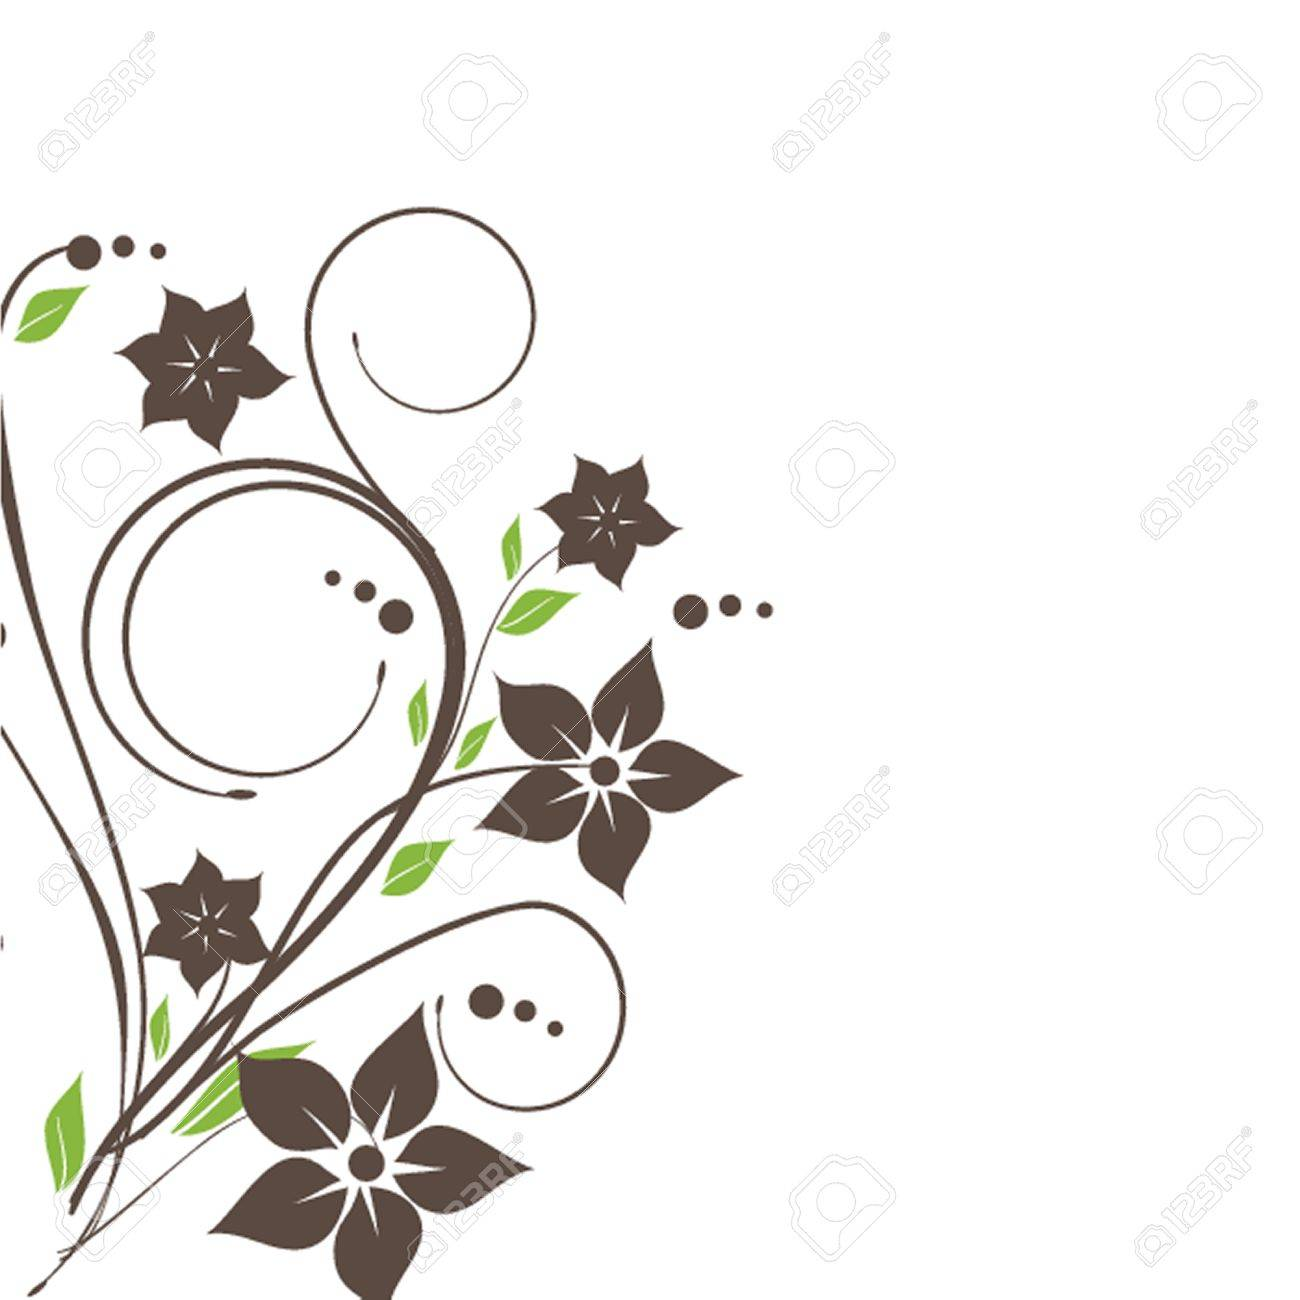 Vintage greeting card with hand drawn flowers Stock Vector - 19916778